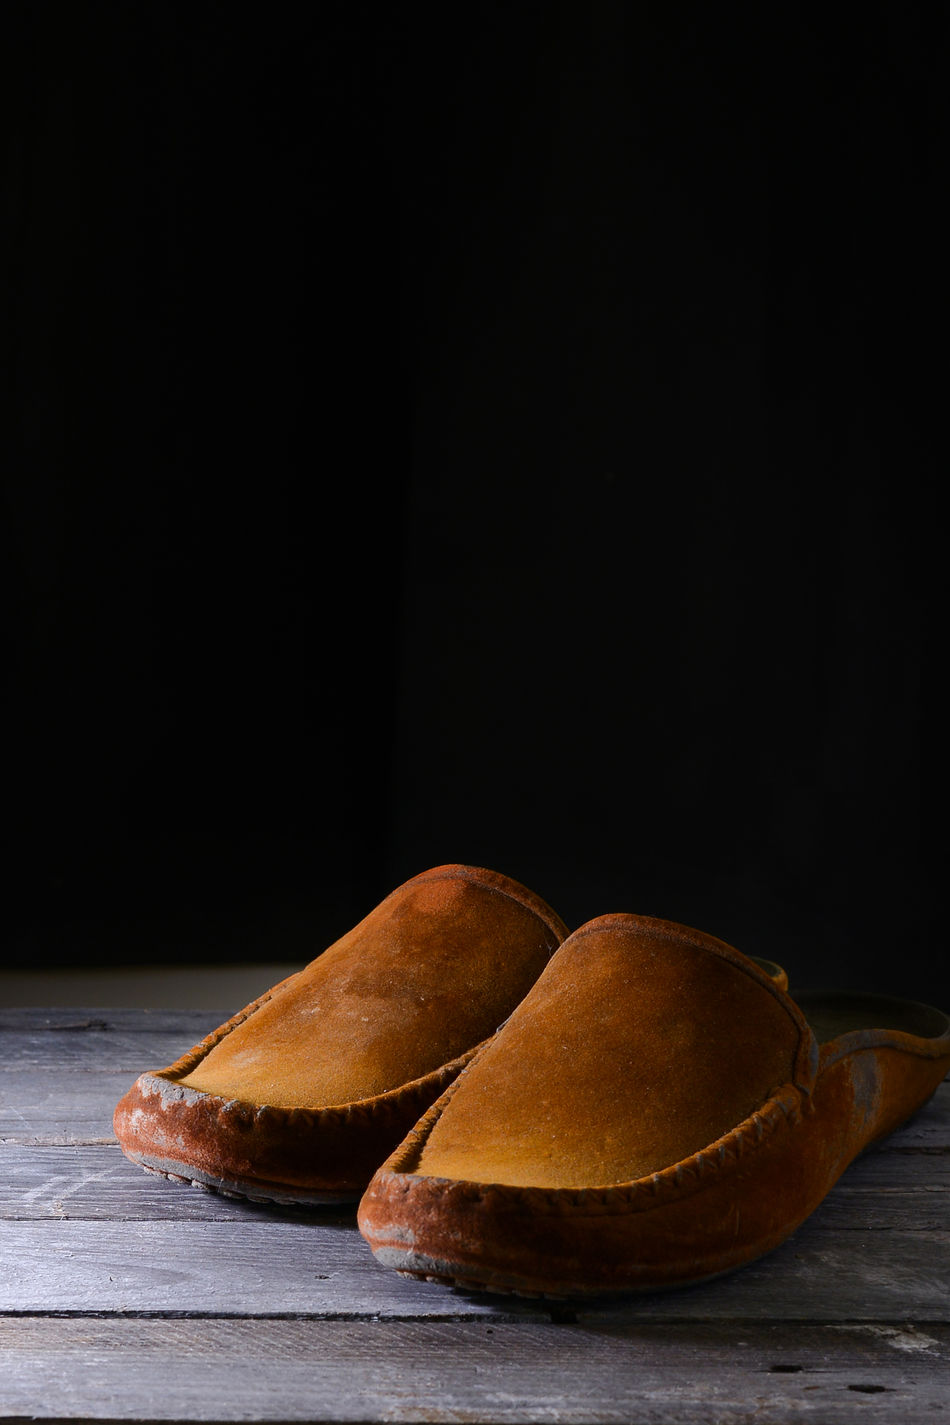 Brown Close-up Leather Shoes Shoes Still Life Studio Shot